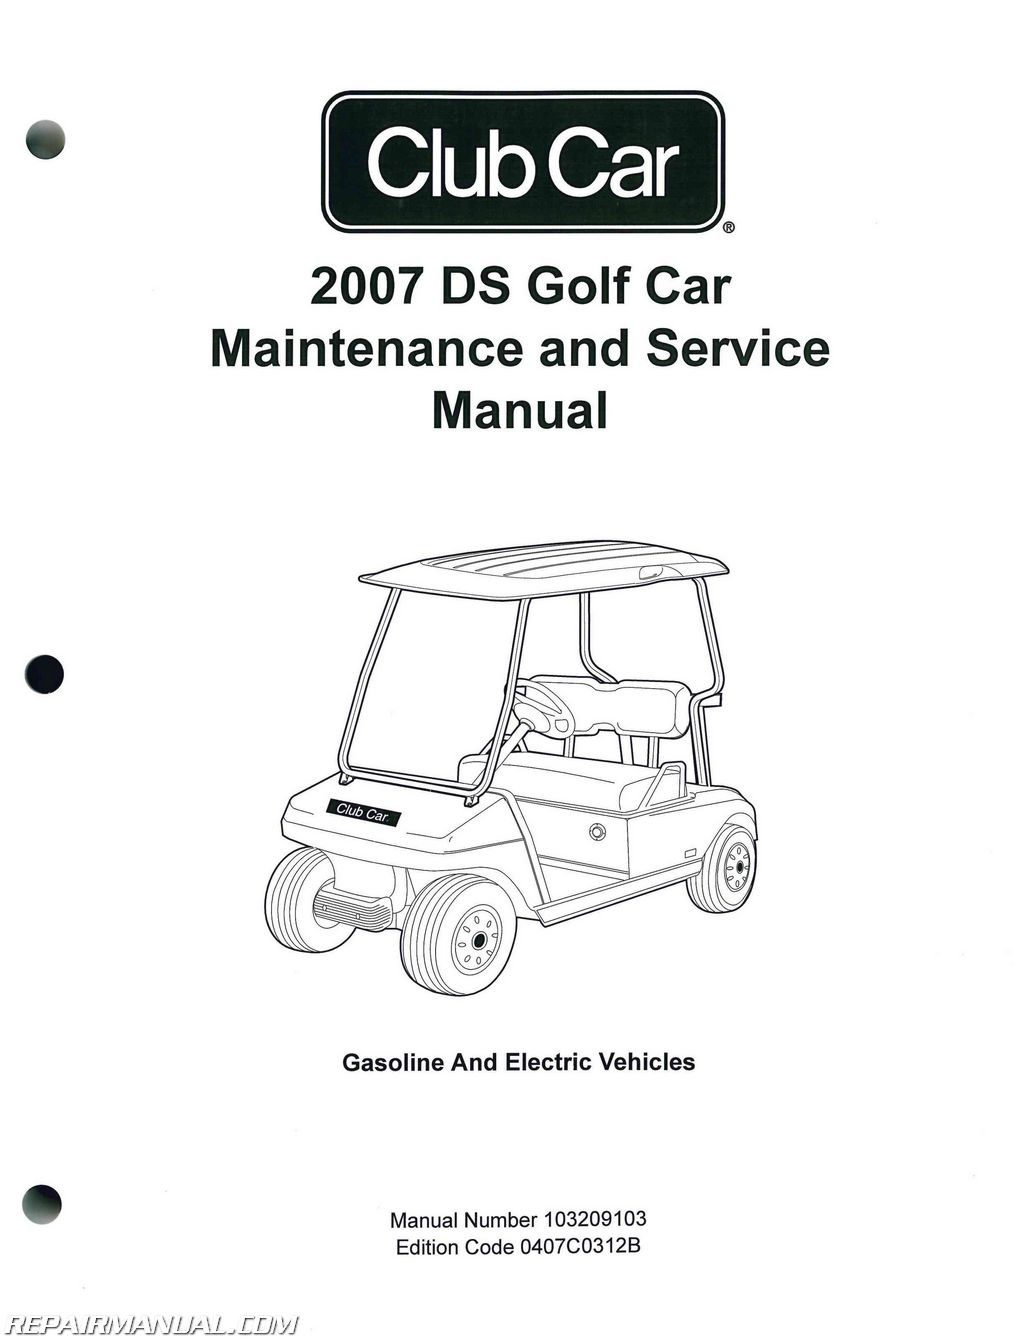 Small Engine Carburetor Diagram Of Club Car Golf Carts Wiring Library Yamaha Cart 48v Battery 2007 Ds Gas And Electric Service Manual